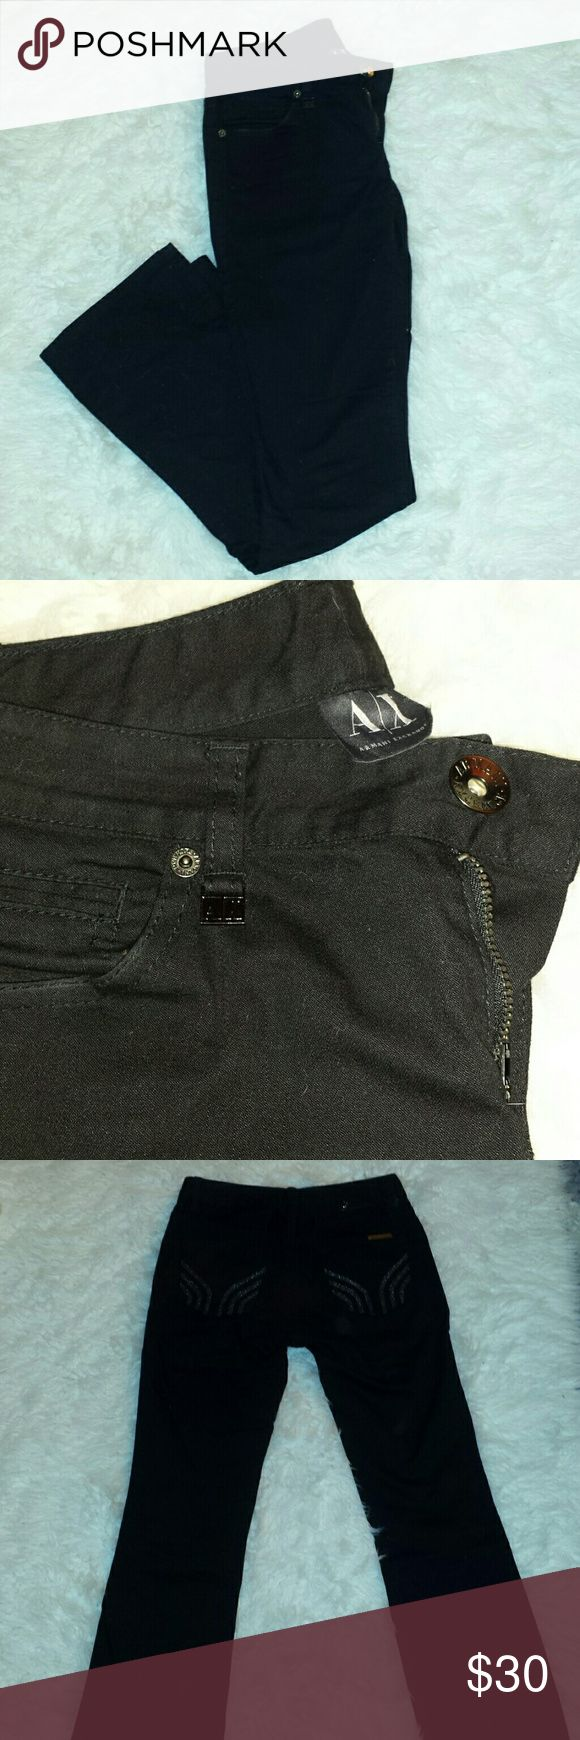 Armani exchange boot cut jeans Armani exchange boot cut jeans, worn few times. Size is 2 regular. Armani Exchange Jeans Boot Cut